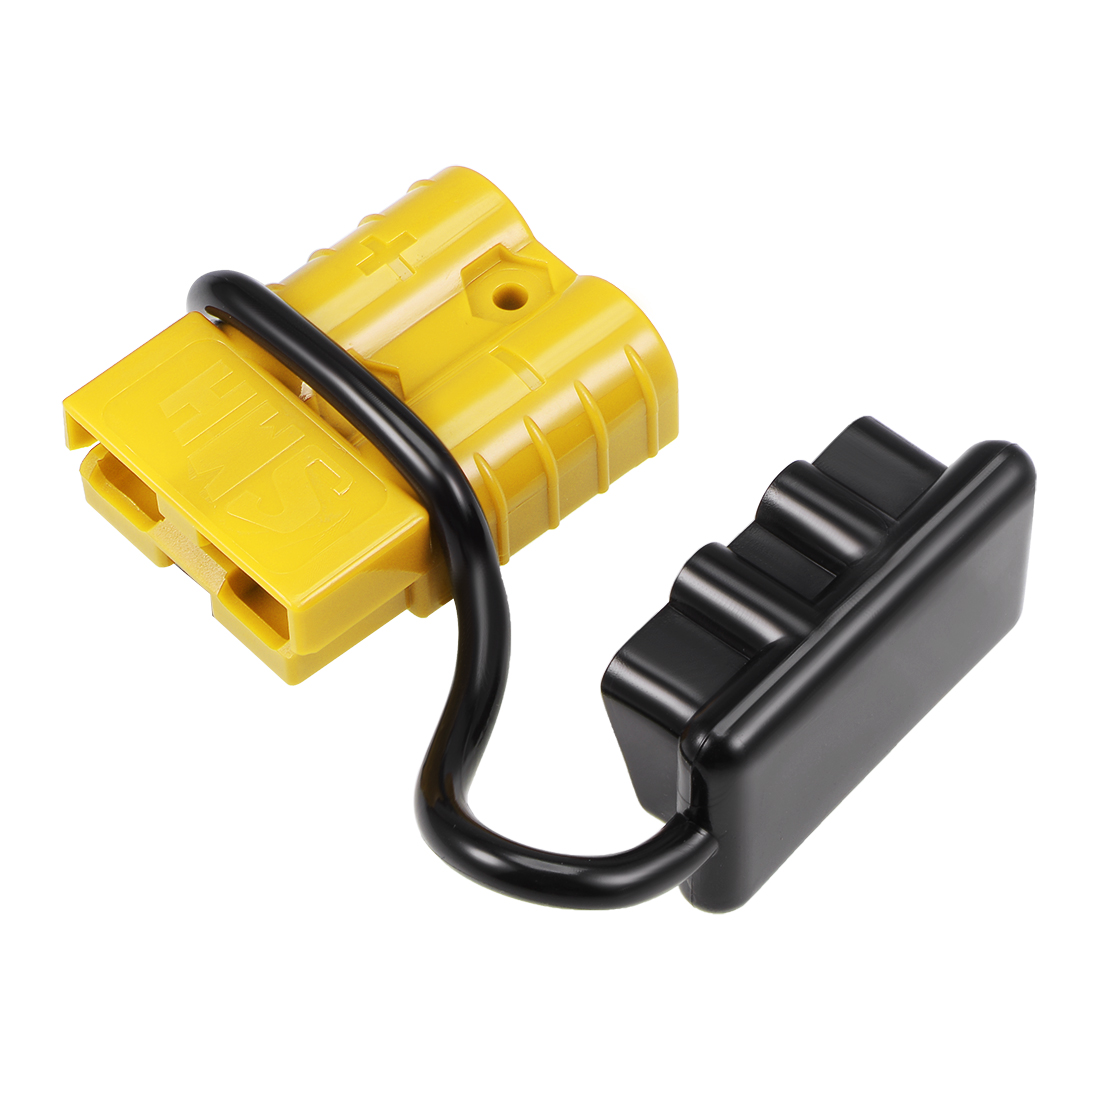 6 Gauge Battery Quick Connect Disconnect Kit 50A Wire Connector, Yellow